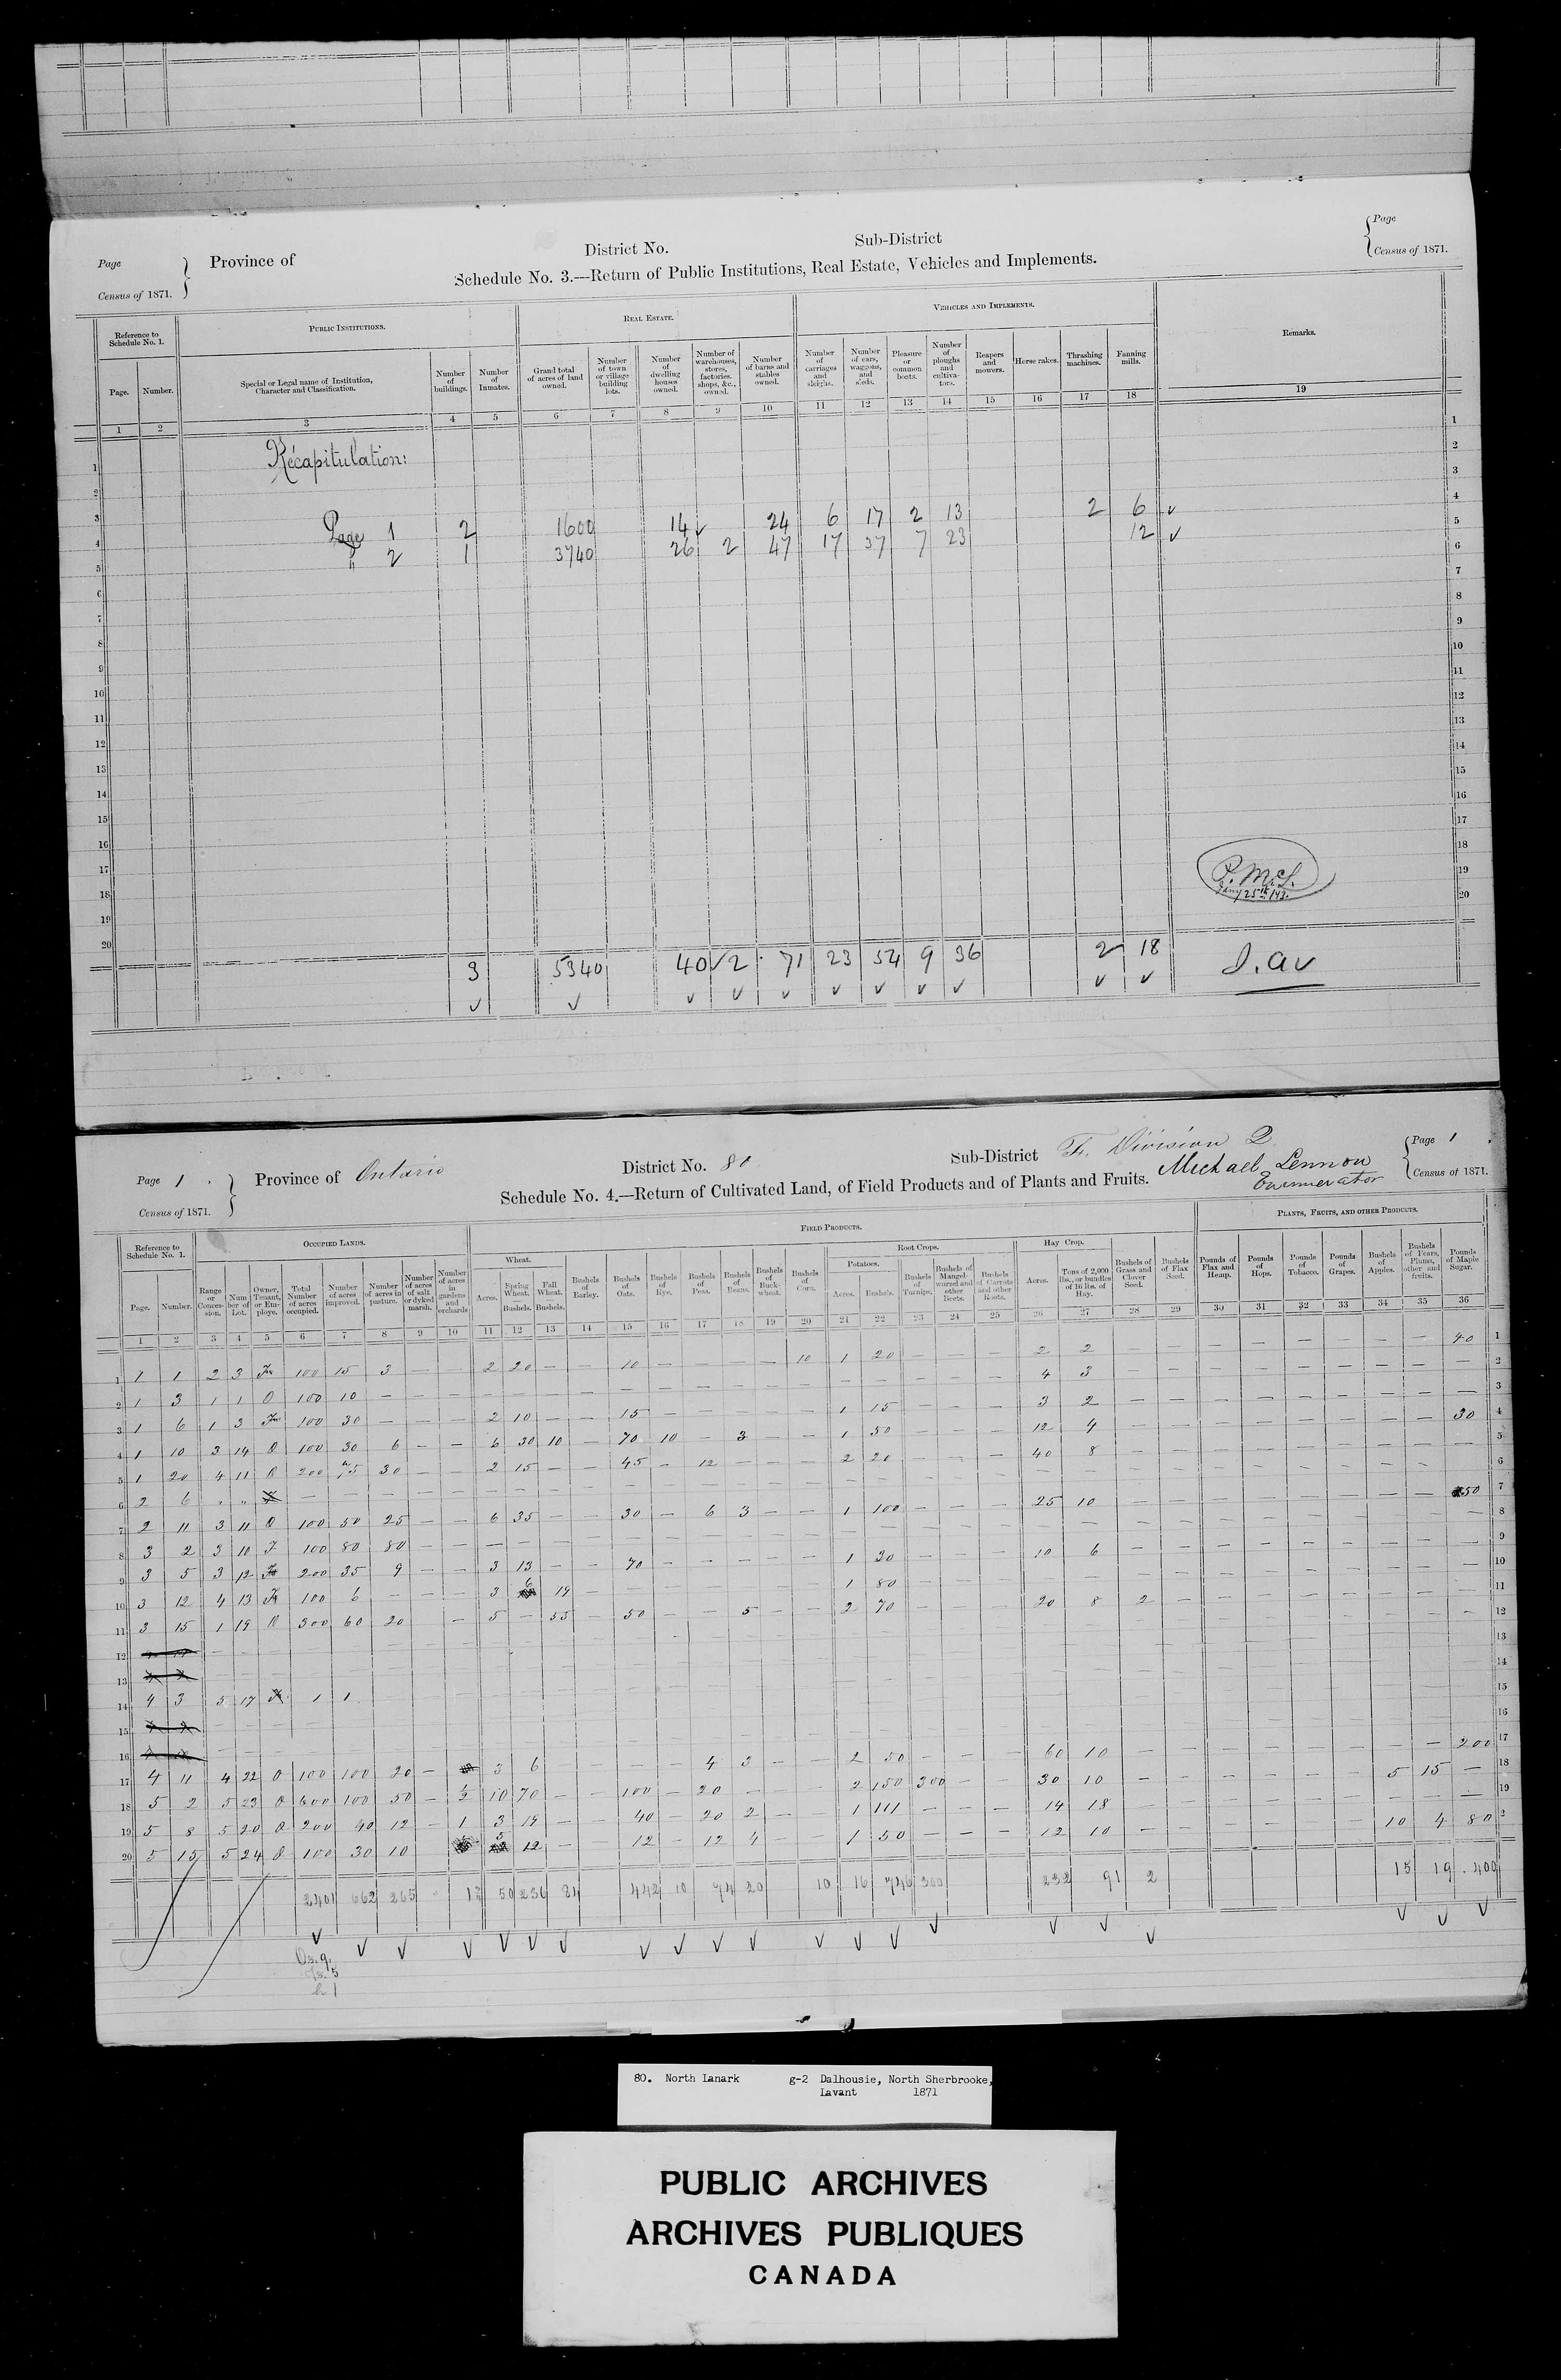 Title: Census of Canada, 1871 - Mikan Number: 142105 - Microform: c-10019